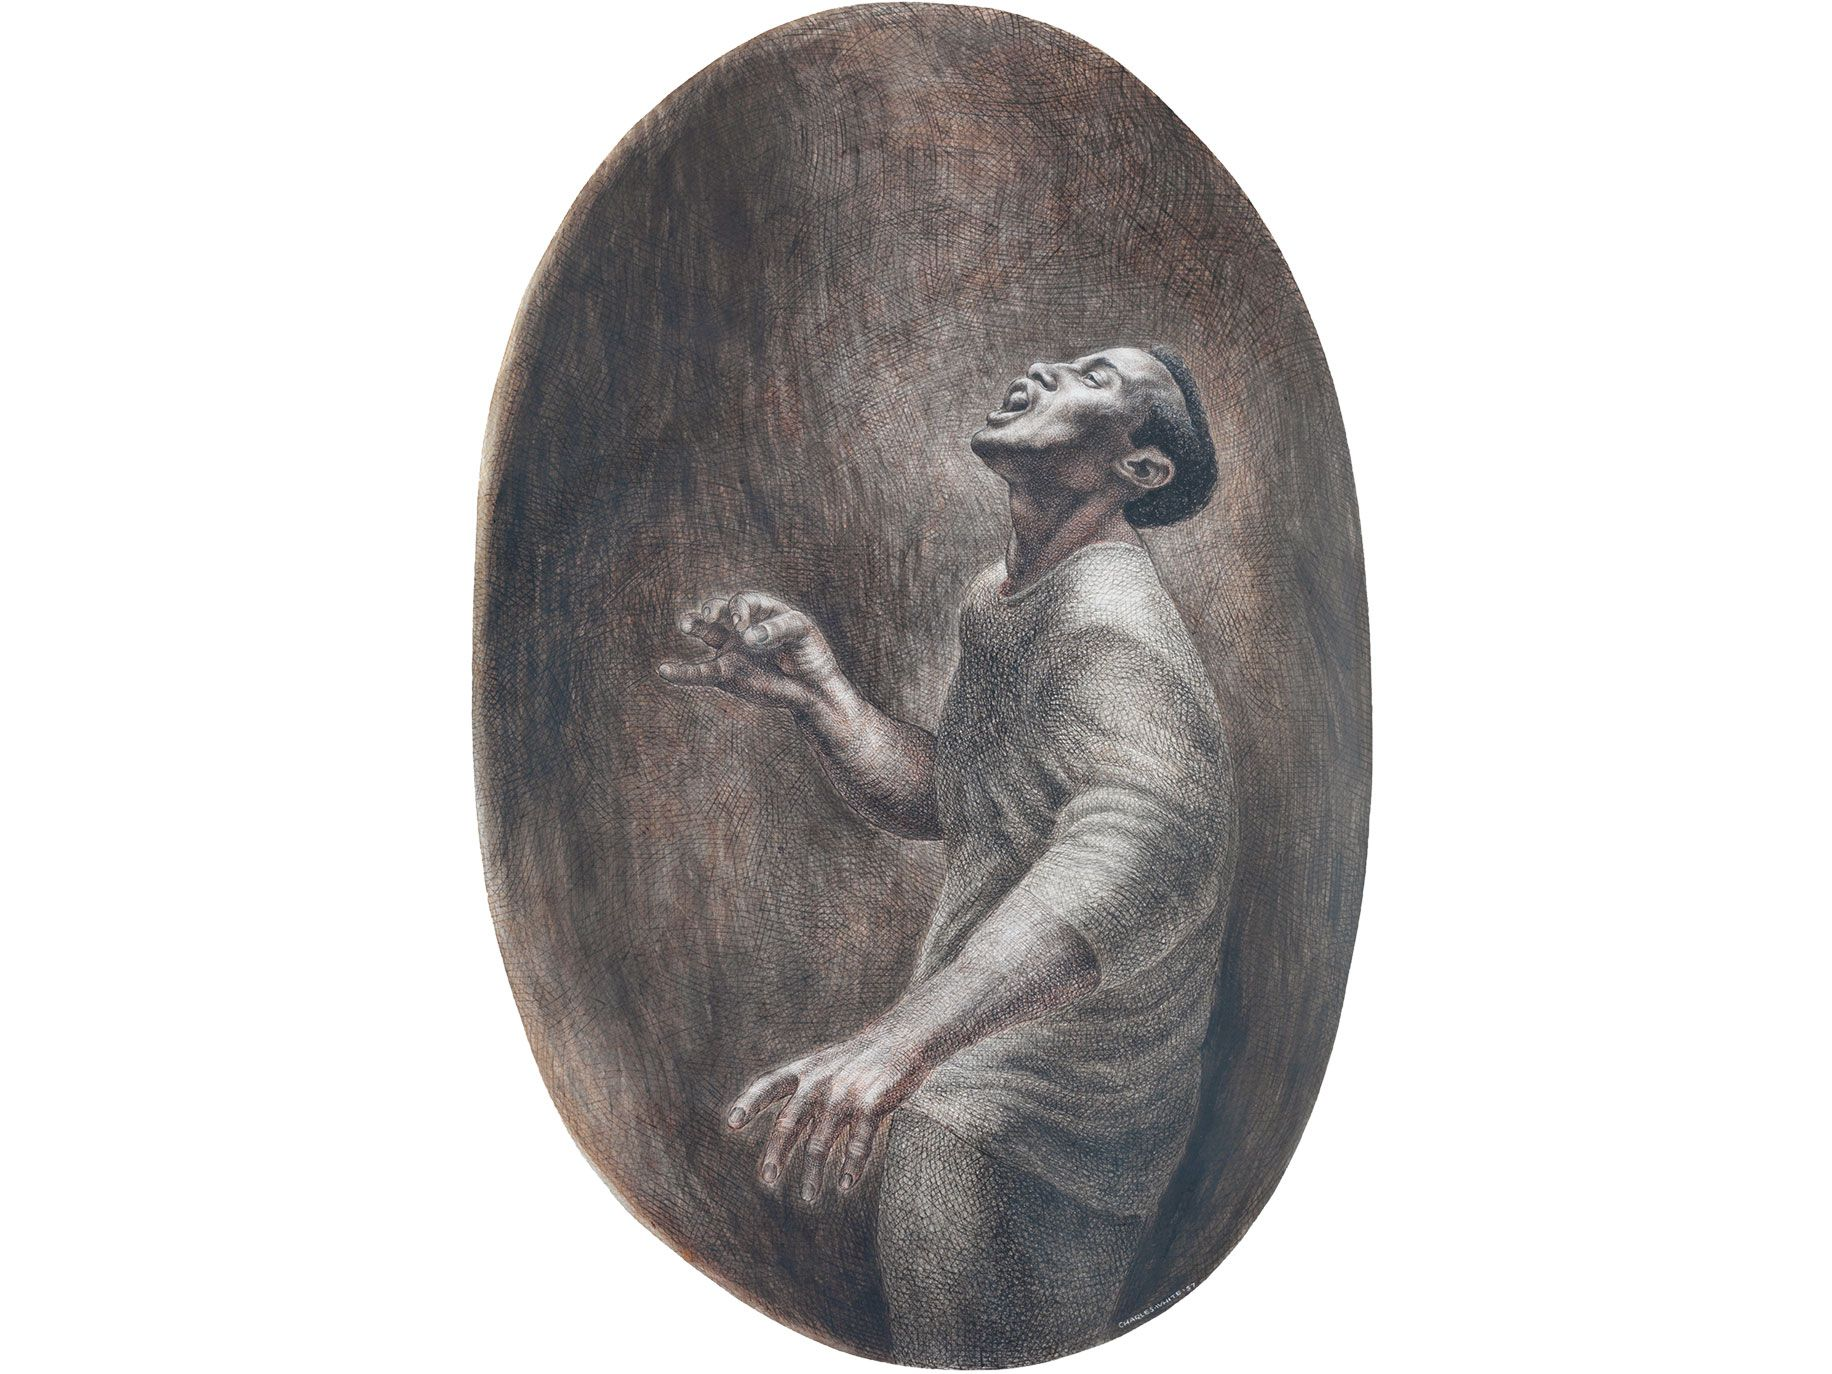 Folksinger (1957), by Charles White, ink on board. From the collection of Pamela and Harry Belafonte.